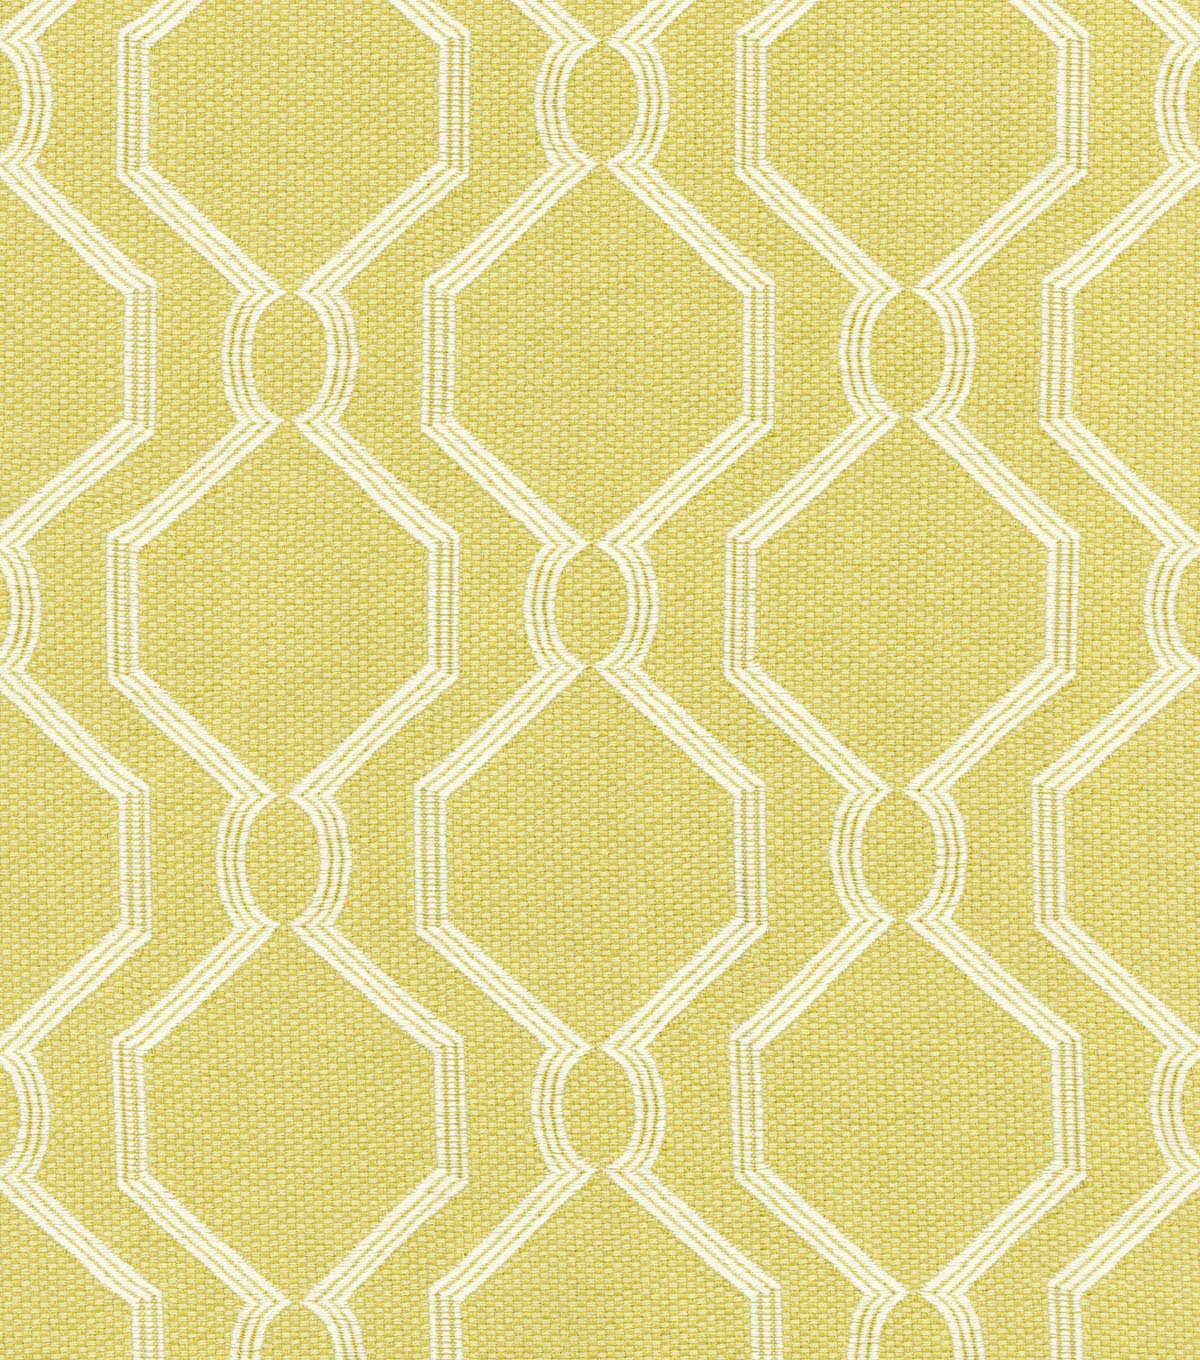 Home Decor 8\u0022x8\u0022 Swatch Fabric-PK Lifestyles Laneway Honeydew